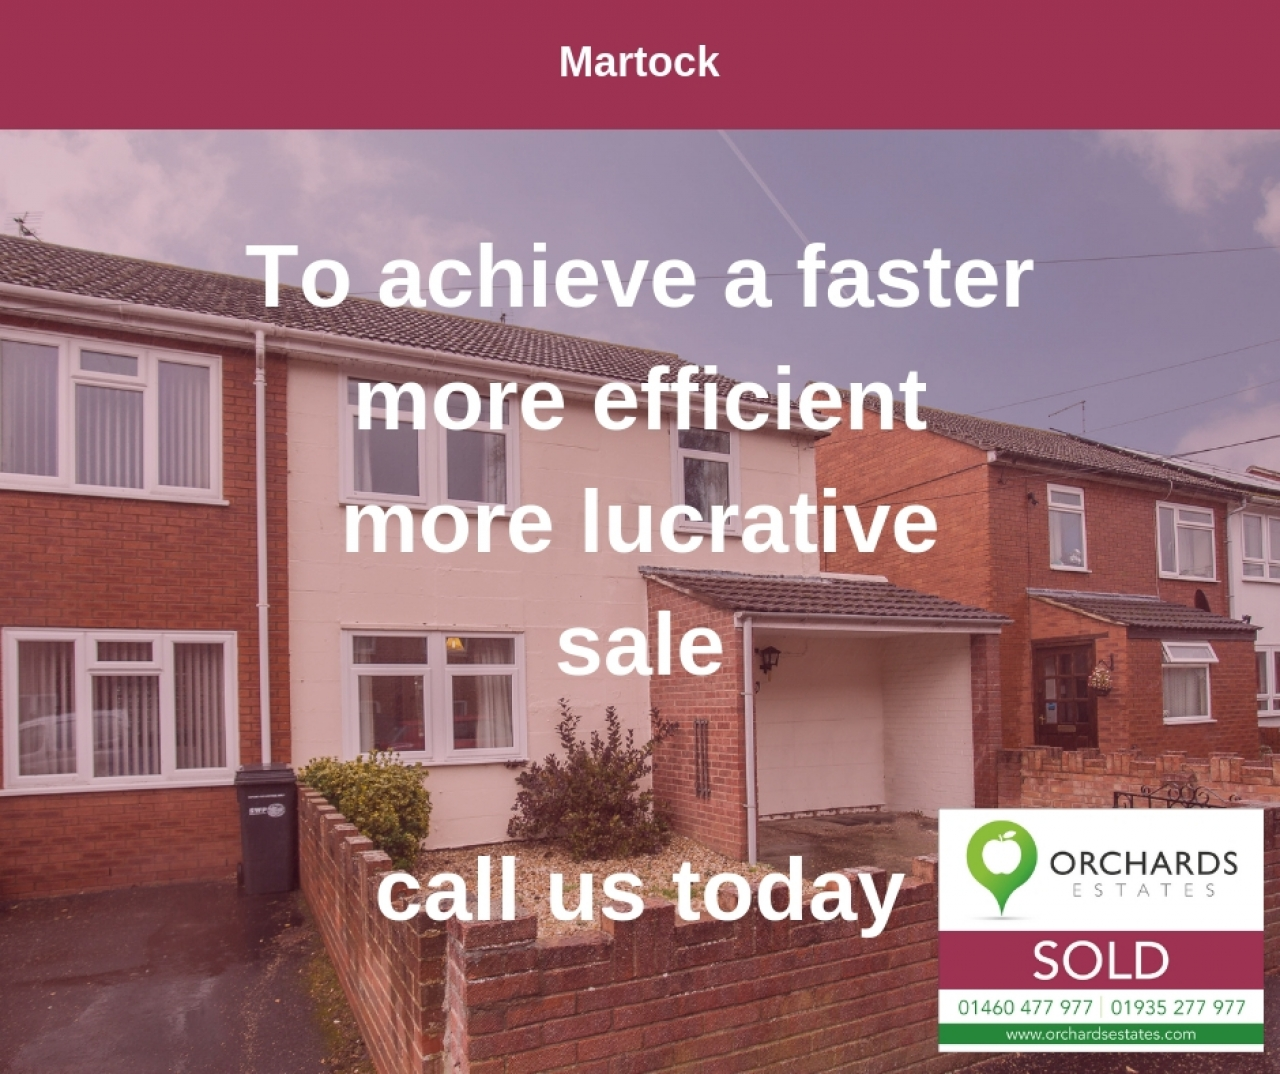 >Best Martock Estate Agent